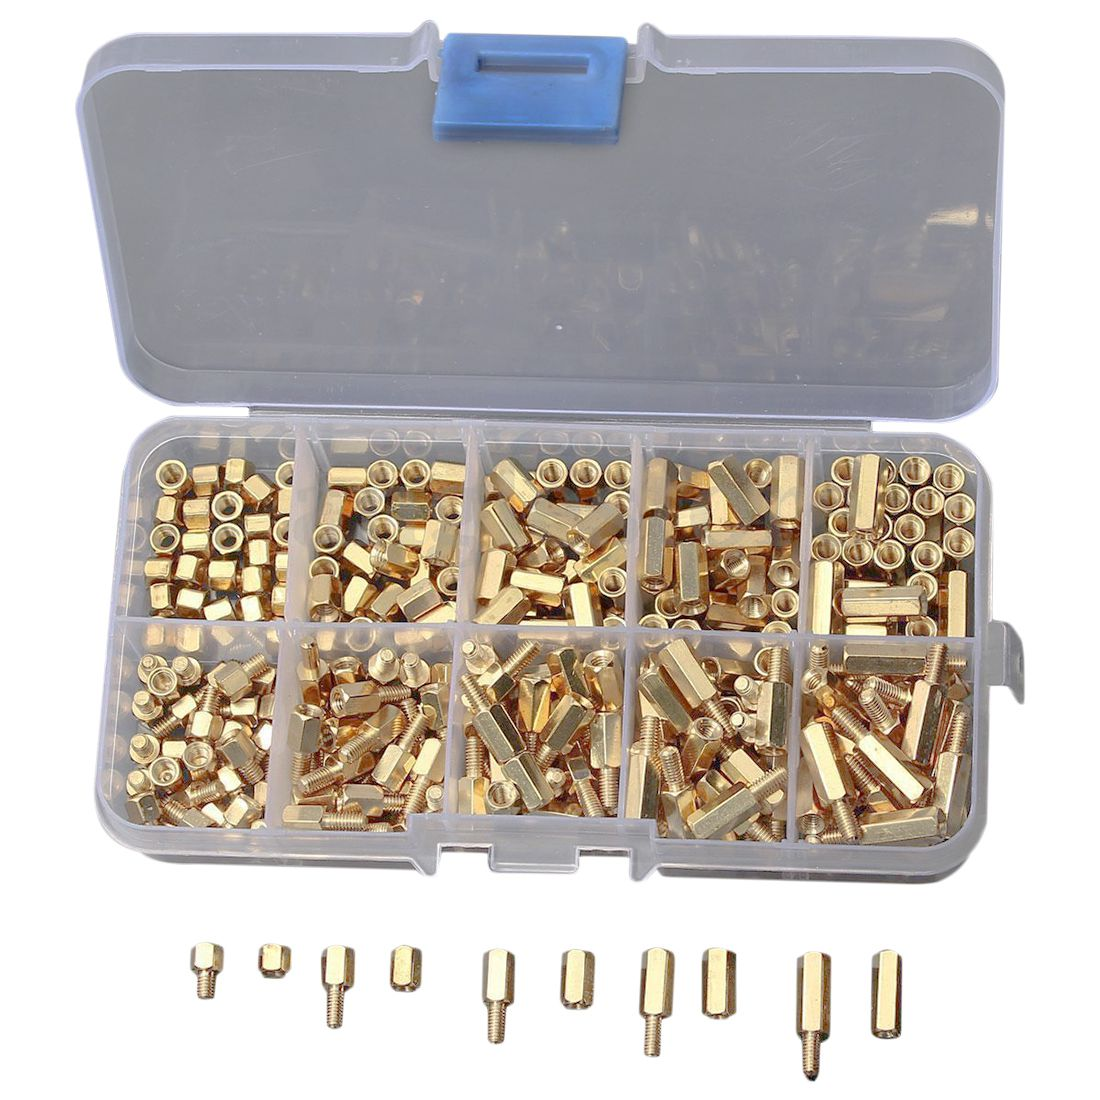 Essential Copper M3 Pillars Nut Pack For Freescale Smart Car In 120pcs Silver Brass Standoff Circuit Board Pcb 300pcs Kit Screw 4 12mm Spacer Hexagonal Isolation Column Threaded Motherboard